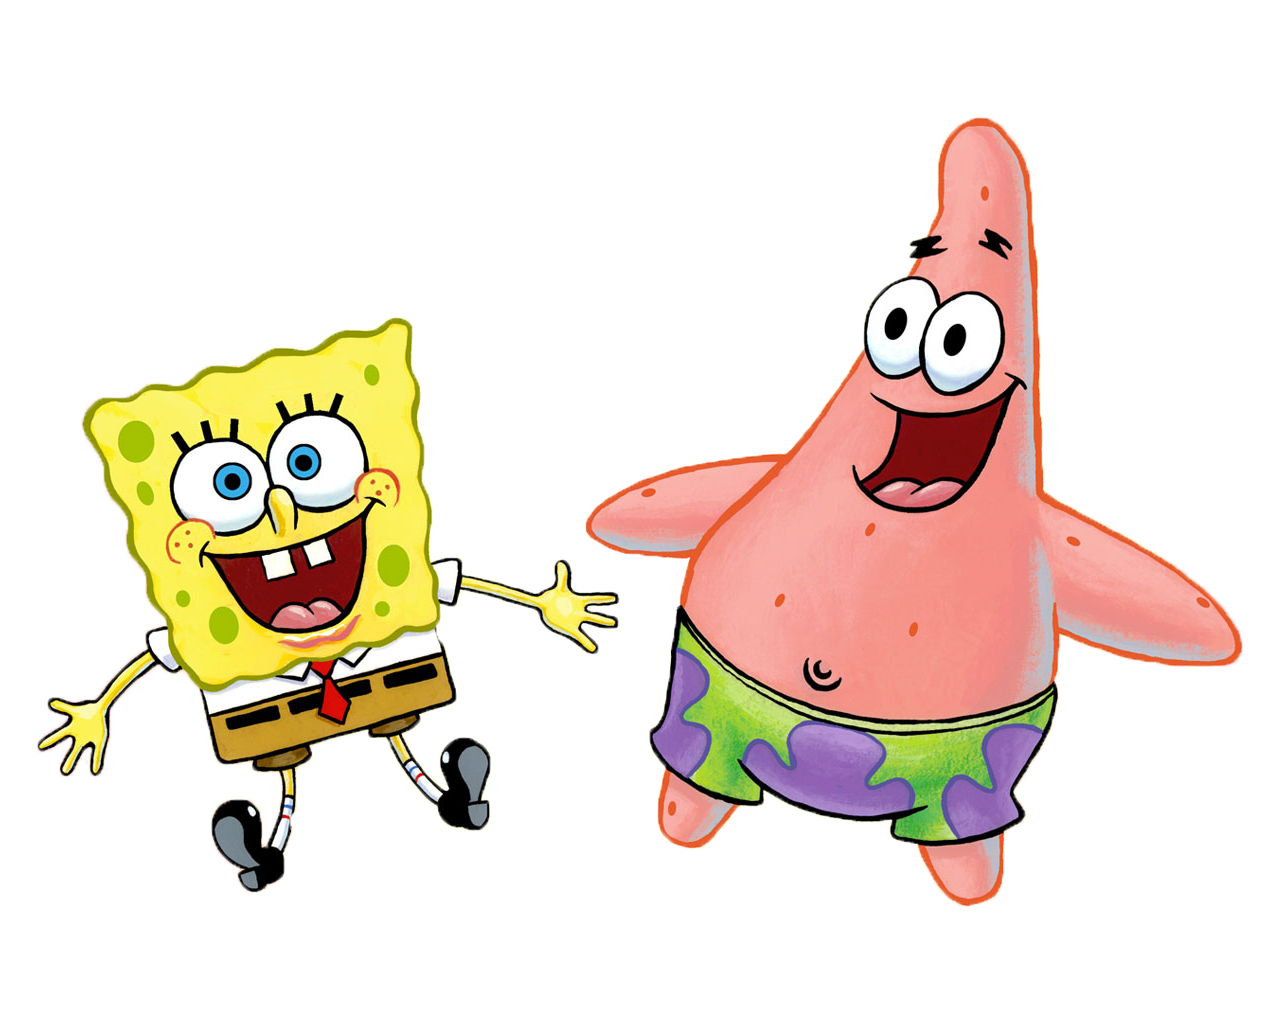 Cartoon 5 Characters : Cartoon characters bob esponja png